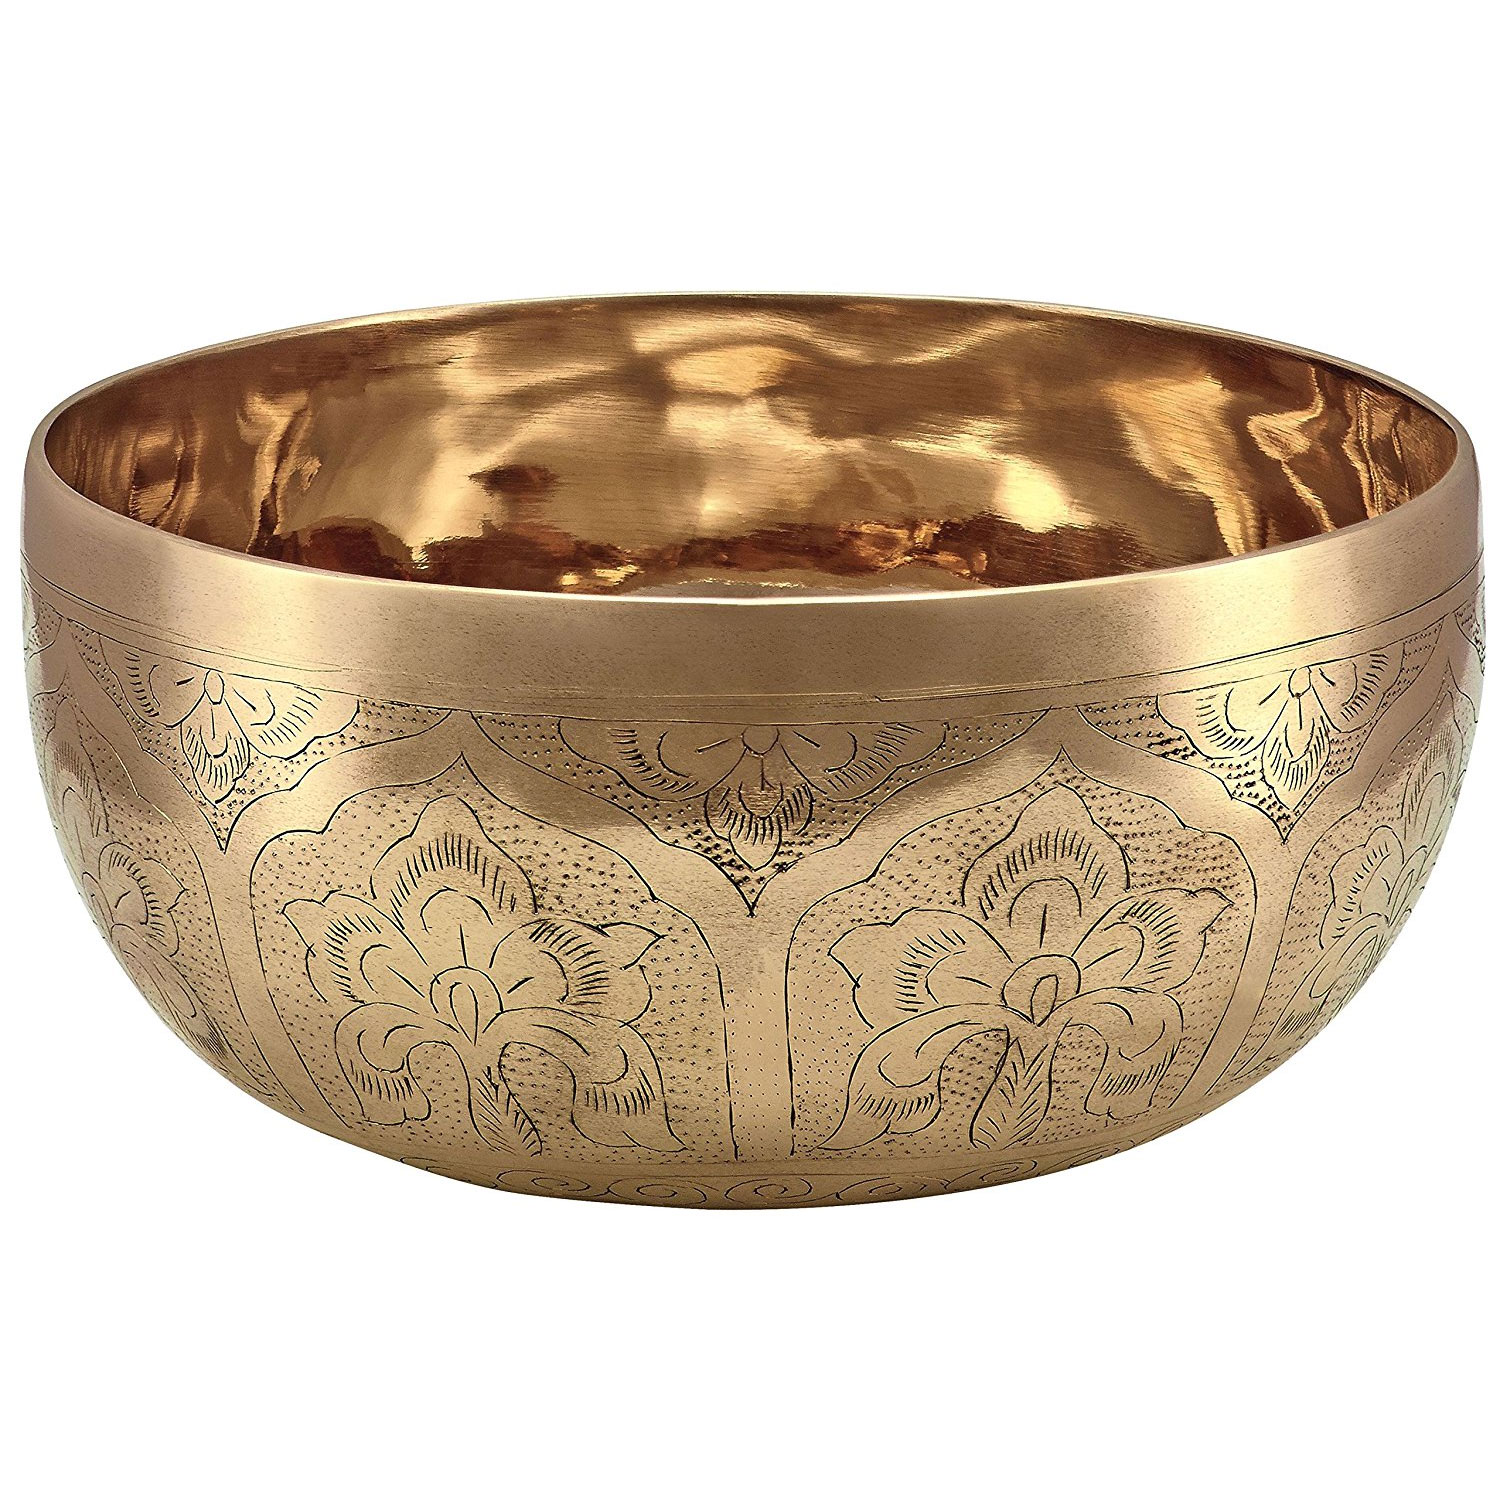 "Meinl Special Engraved Singing Bowl (6.7 - 7.1"" / 750-850g)"